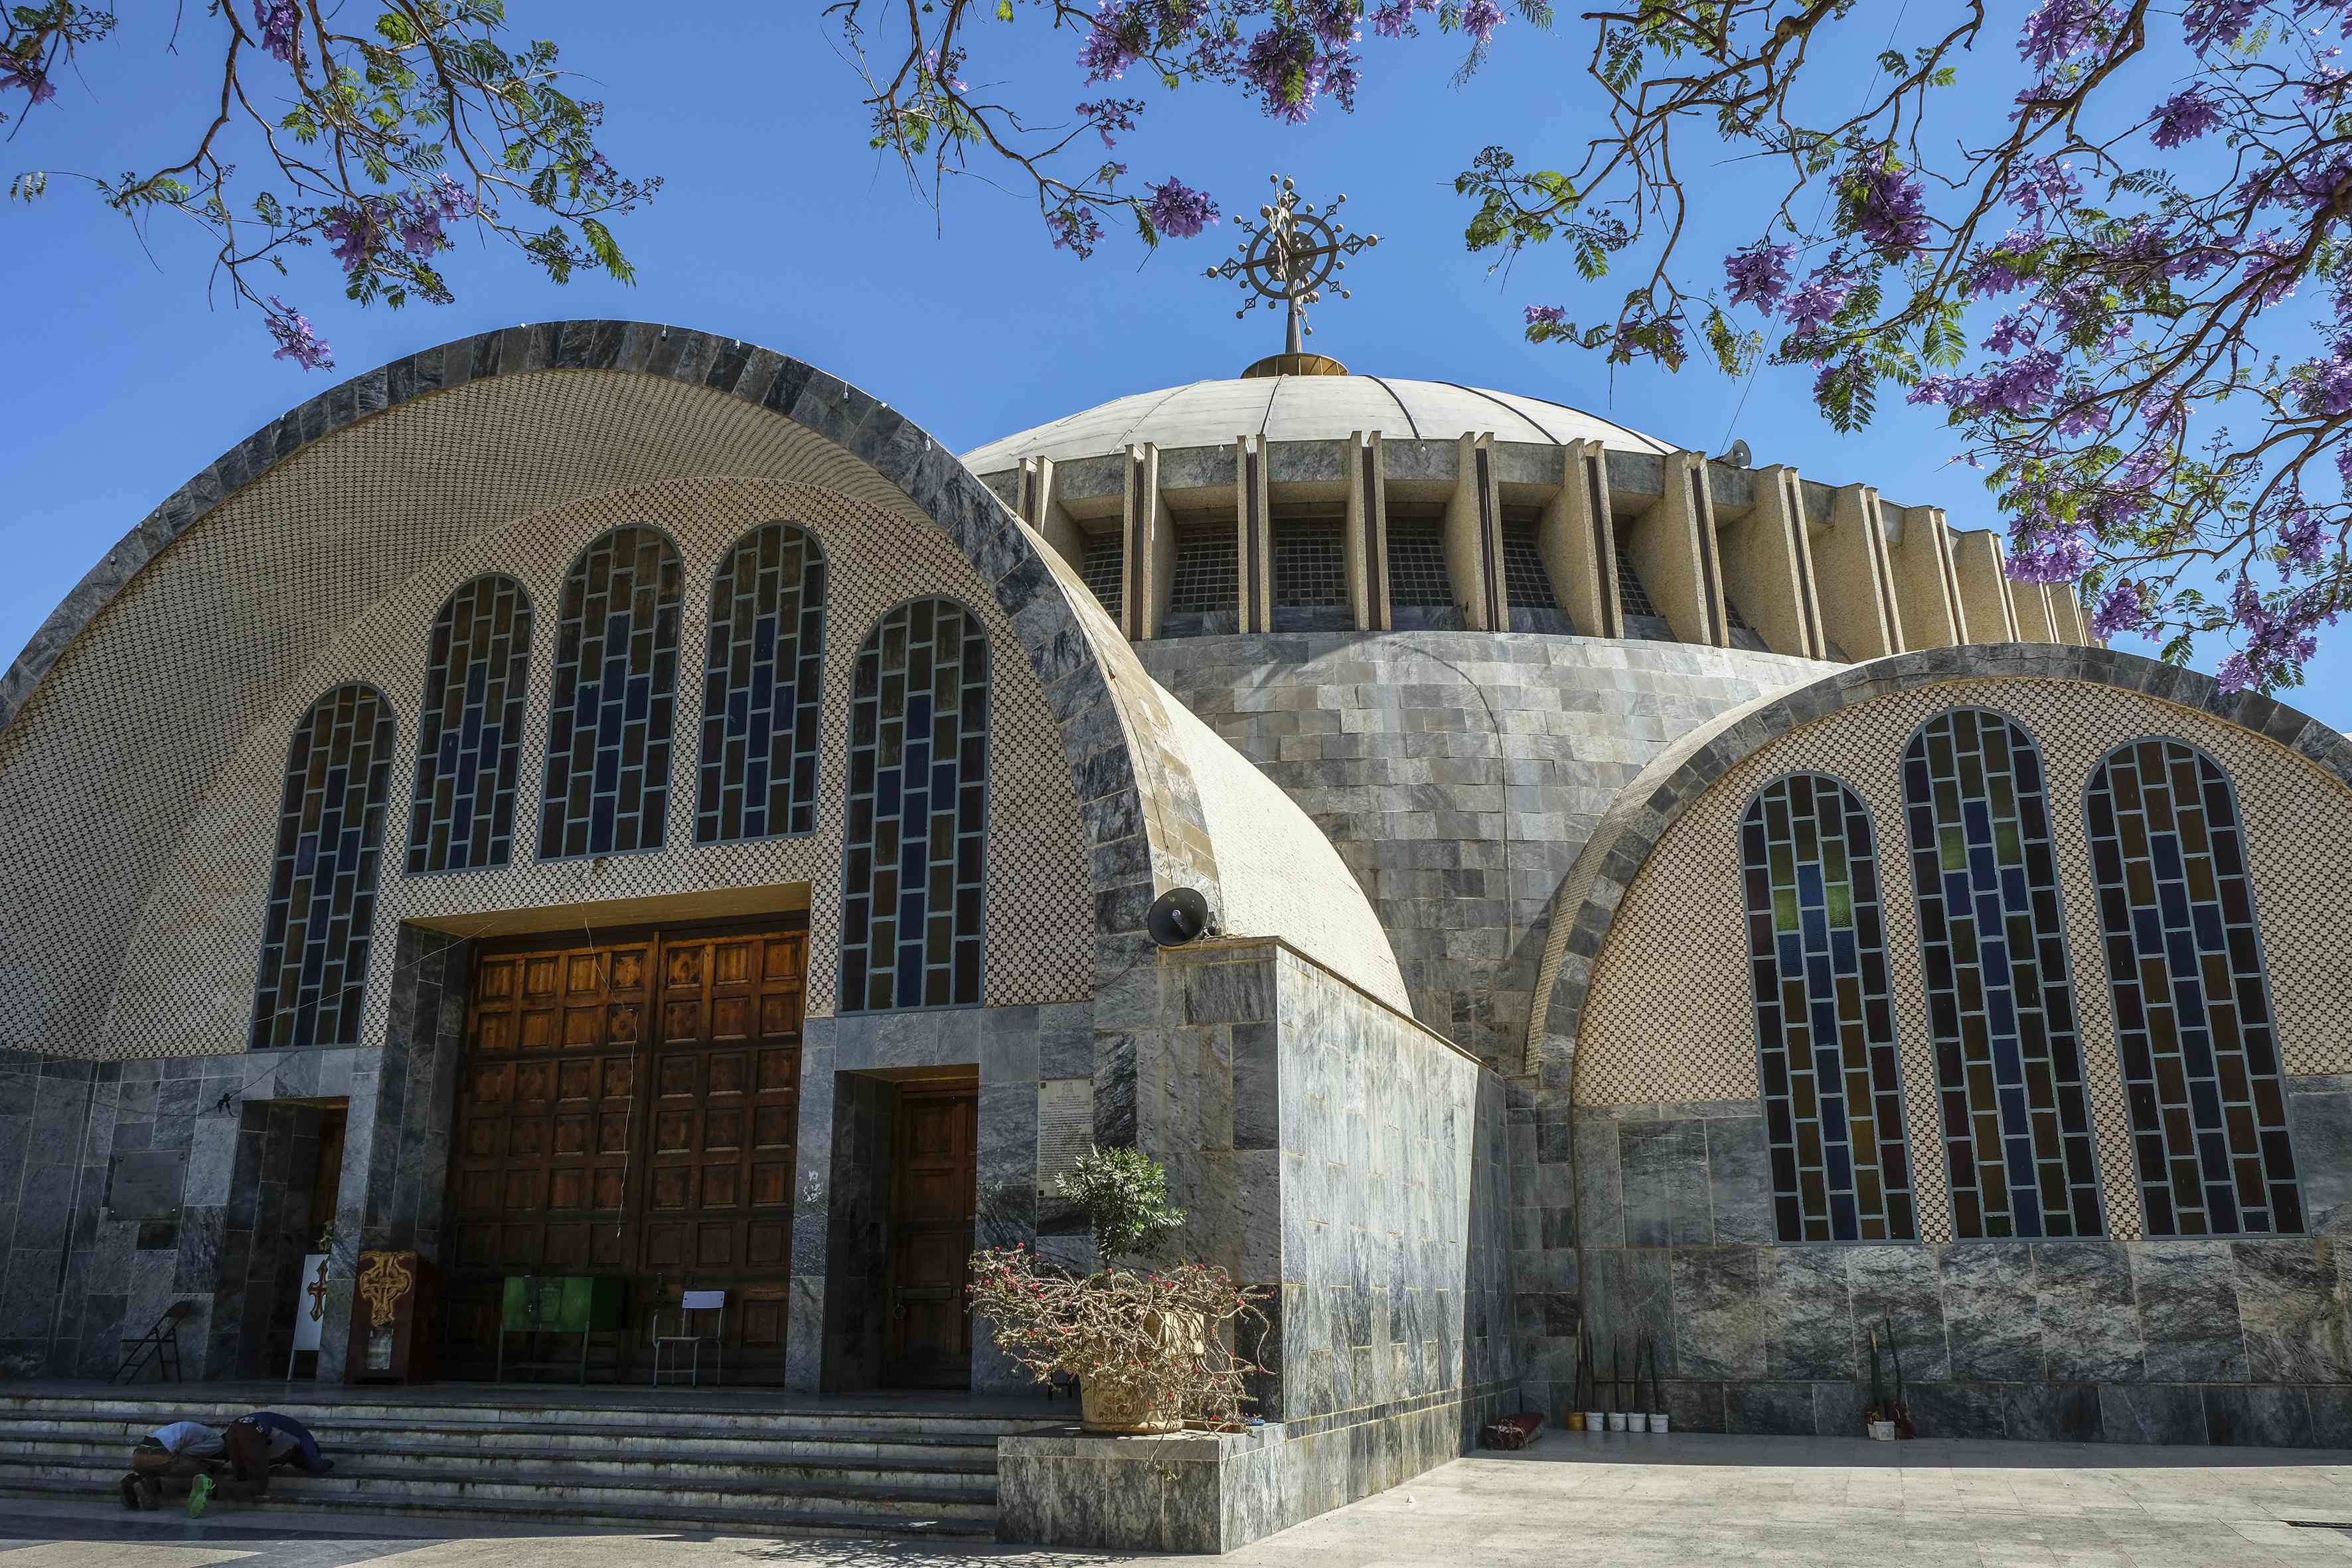 Church of Our Lady Mary of Zion, Aksum, Ethiopia